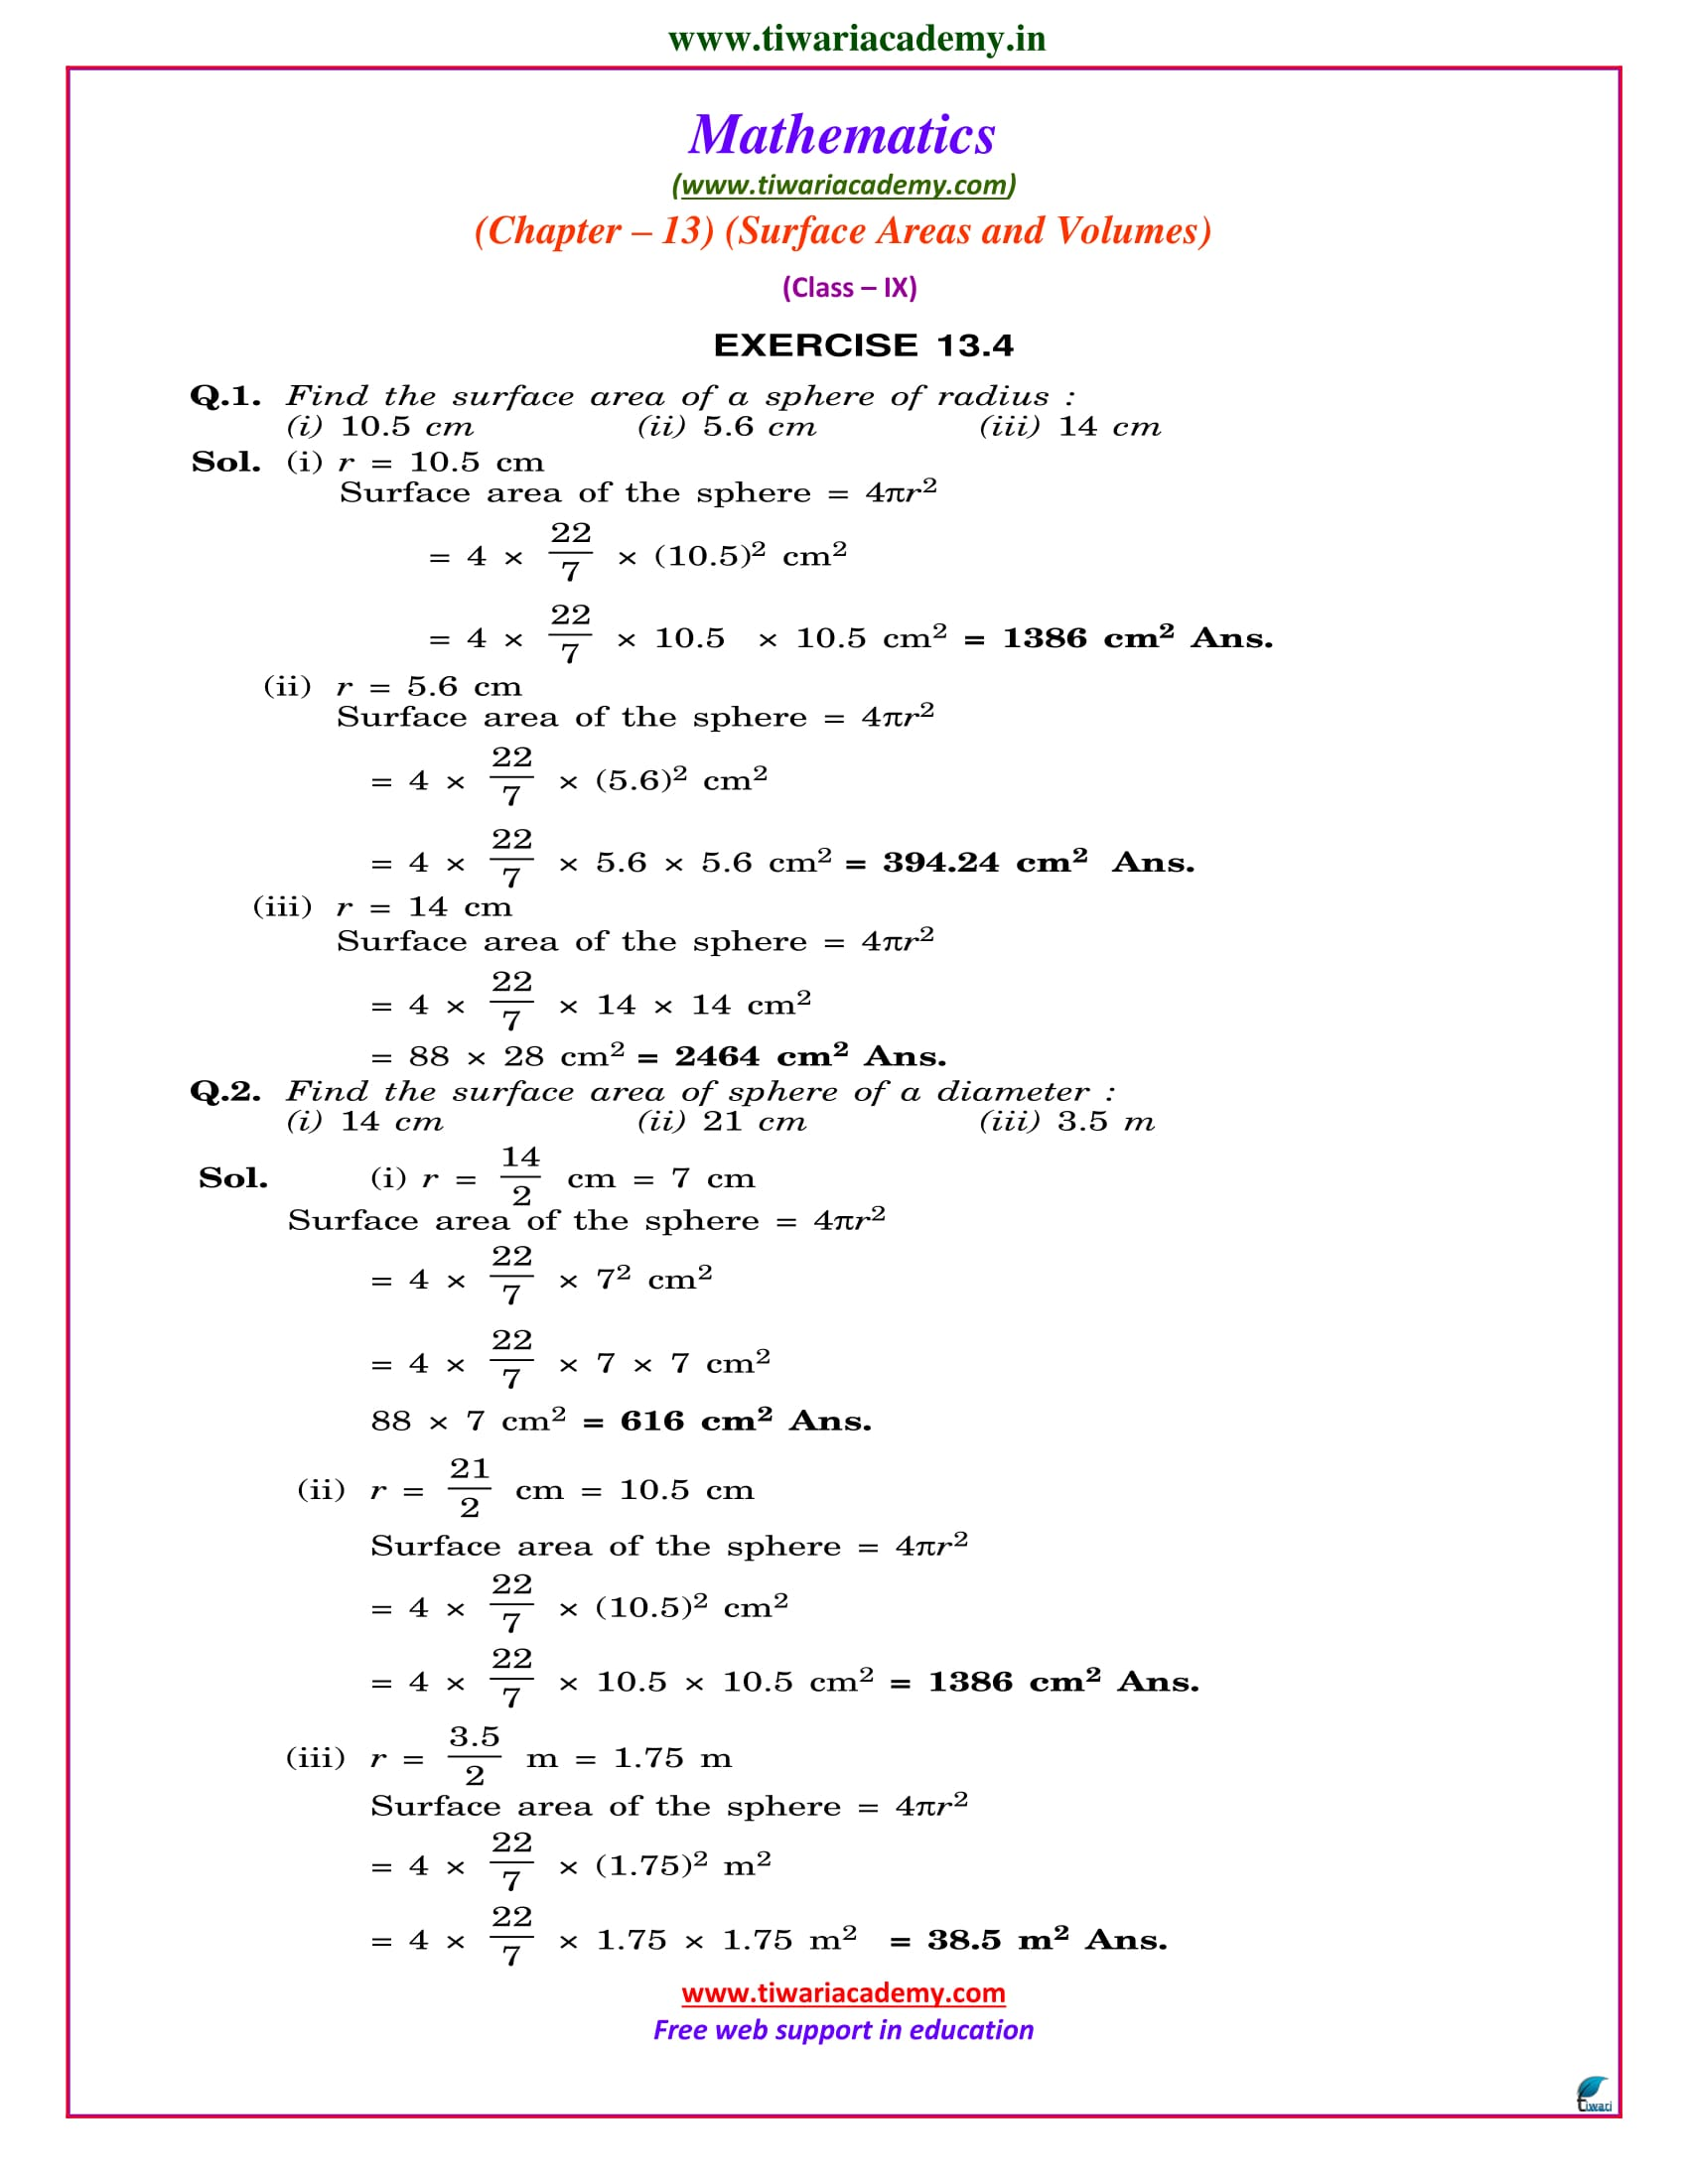 NCERT Solutions for Class 9 Maths Chapter 13 Exercise 13.4